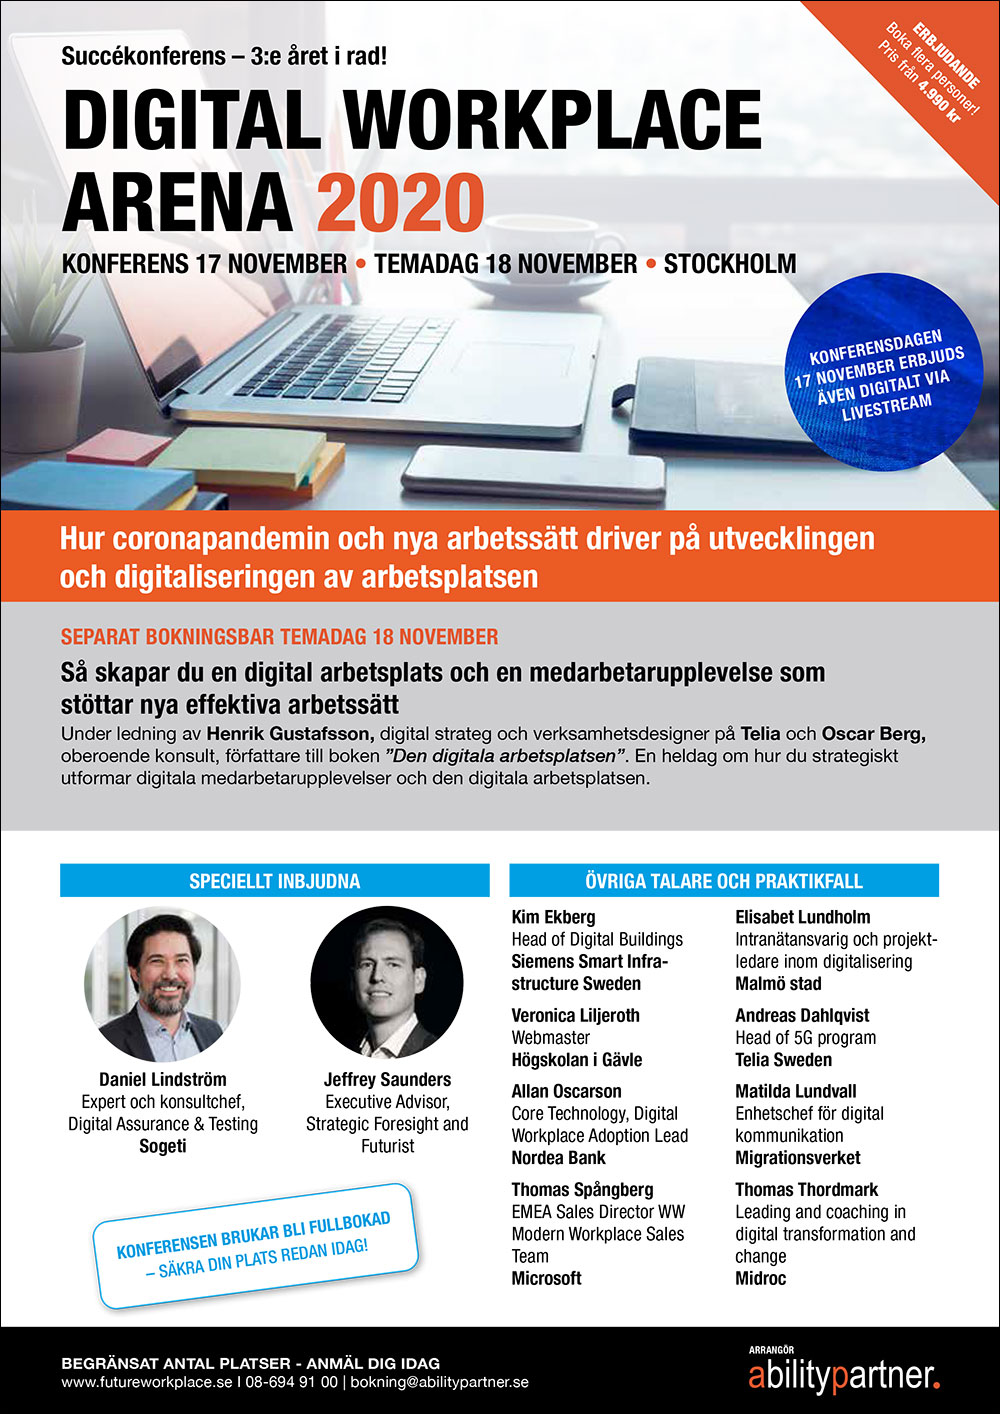 Digital-workplace-arena-2020